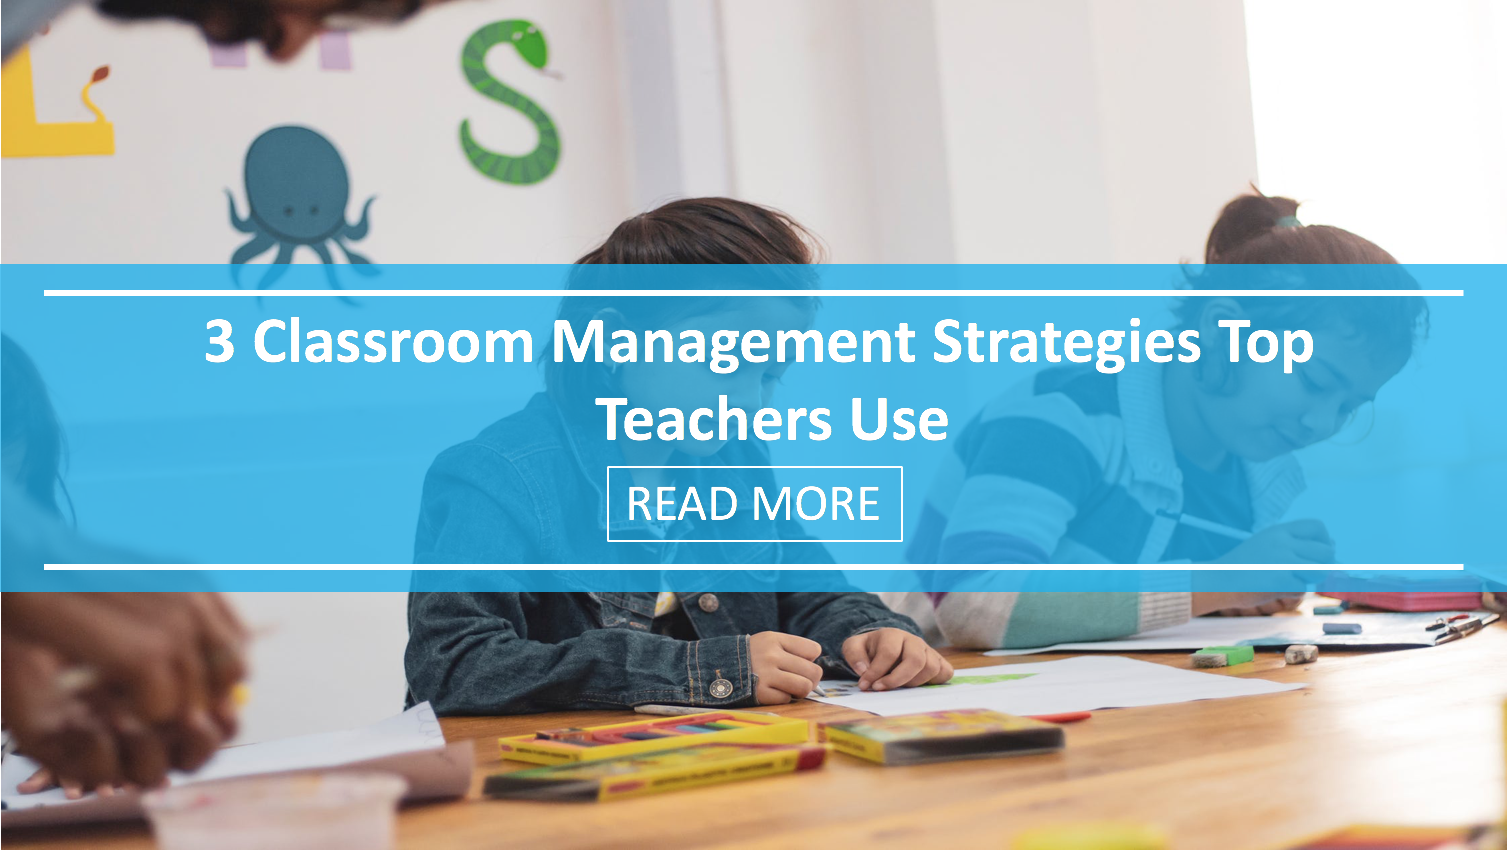 3 Classroom Management Strategies Top Teachers Use